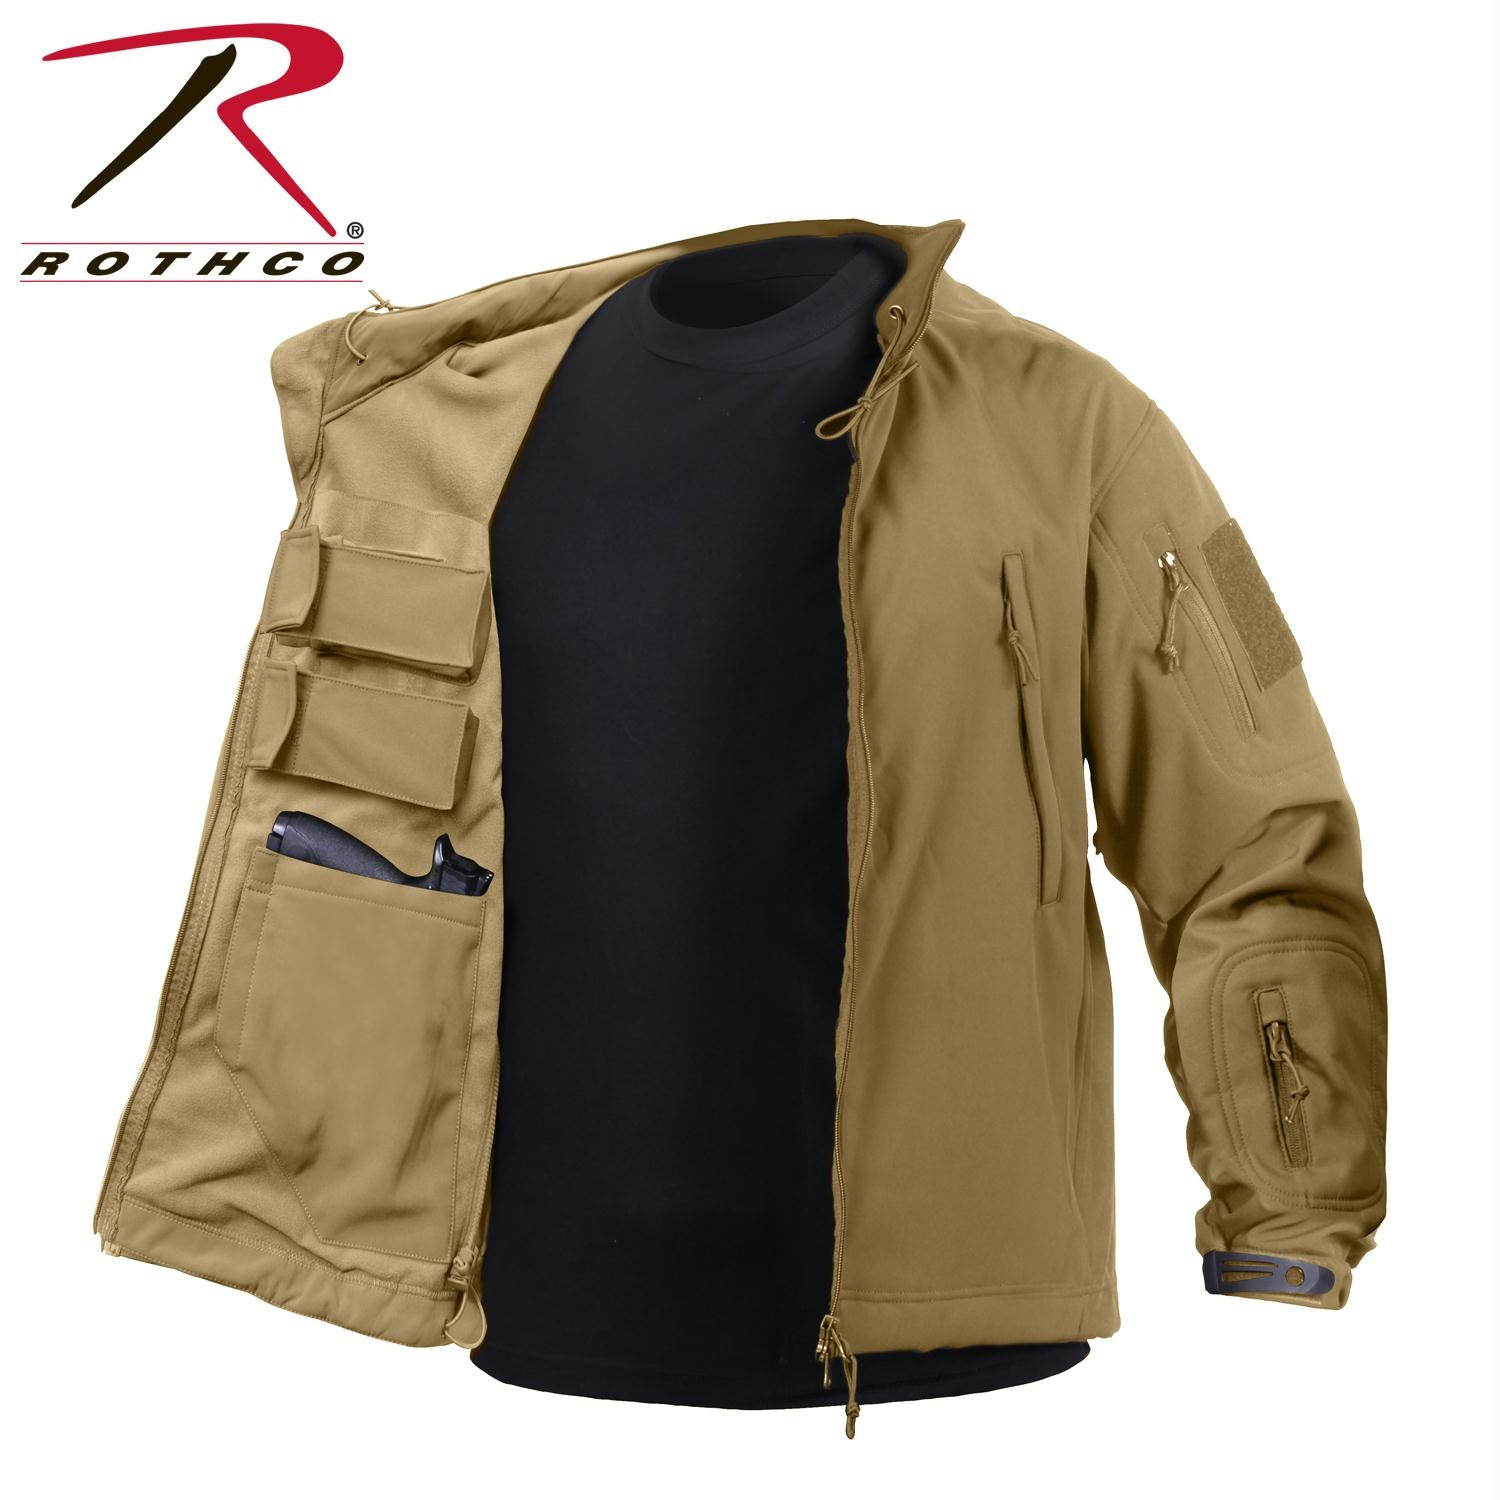 Rothco Concealed Carry Soft Shell Jacket - Coyote Brown / L